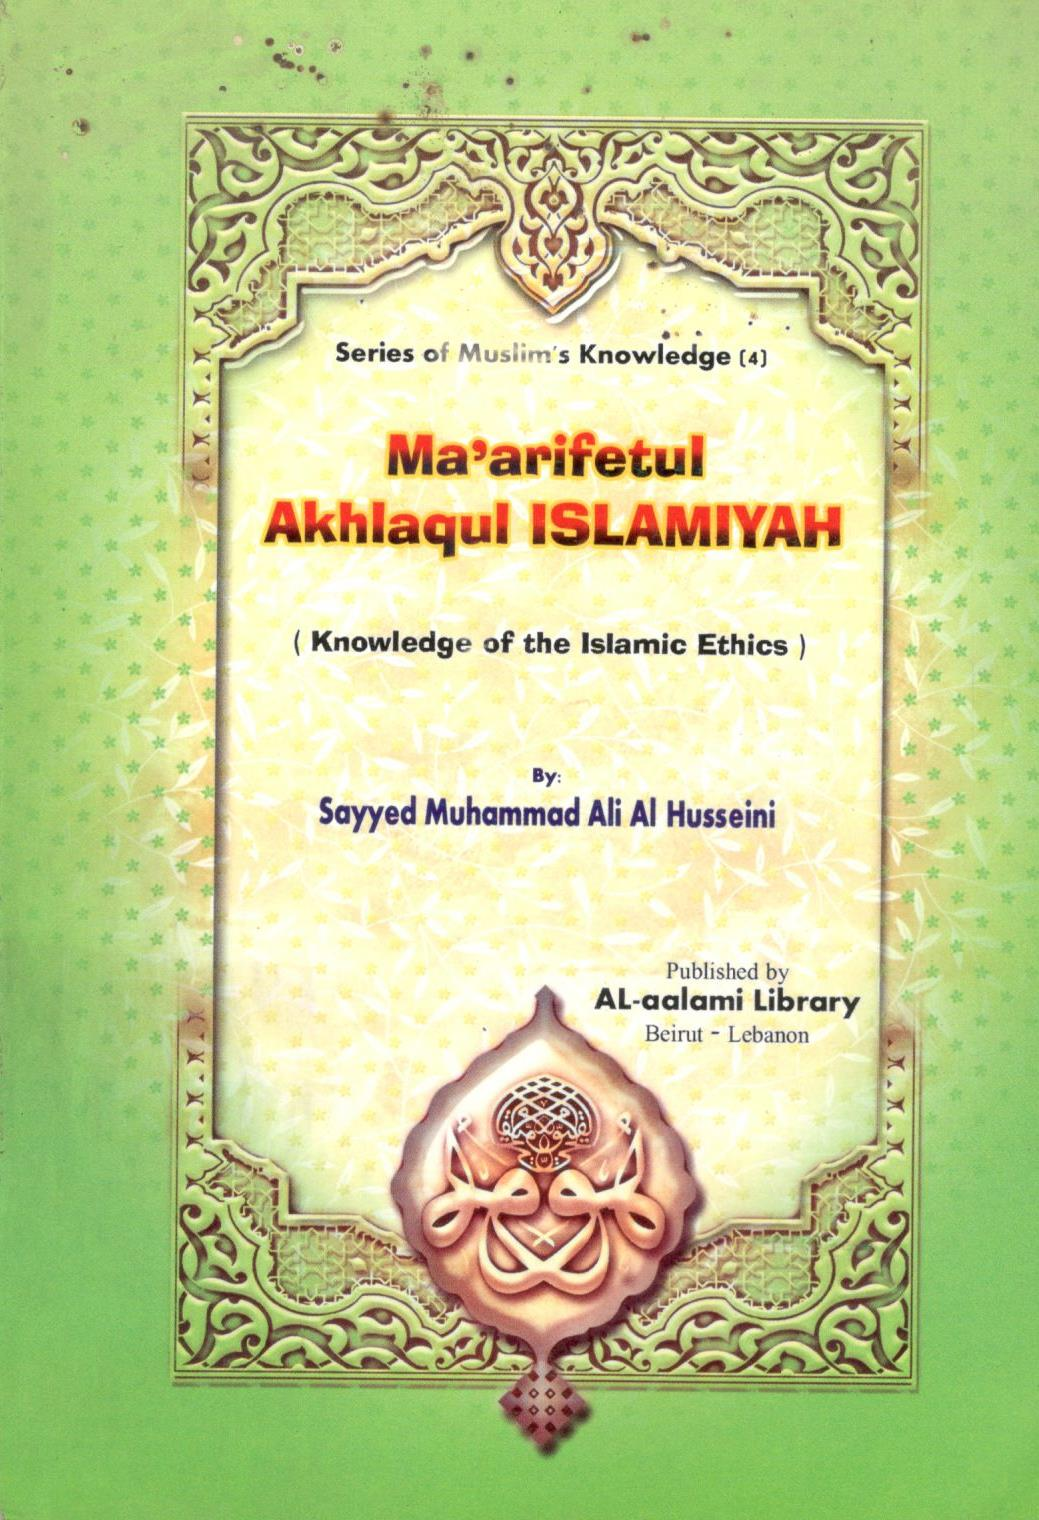 ( A Knowledge of the Islamic Moralities  ) By: Sayyed Mohamad  Ali El- Husseini   In the Name of Allah the Beneficent , the Merciful . We get help from Him (Allah) upon the evil of ourselves and the creatures which He created  , and the praise and the peace upon our Prophet Muhammad Bin Abdullah (P.b.h), the Prophet of mercy and humanity, who is described  by the Lord of the worlds - he has great ethics  – and peace be upon his infallible family –  Ethic : is a common human matter which all people share regardless of dissimilarity of their religions , multilingualism , and the remoteness of placers where they live .   The human beings used to live in communities which include relatives and strangers , male and female , young and adult , educated and ignorant , employed and unemployed. So the human need  all of those people and the sociability  forces him  to deal with them , so ethics was the mean that is used to deal with the others, and the others use to deal with you , according to the base : ( Treat others the way you like to be treated ) or ( As you condemn others , others are going to condemn you ) . So that the human is still in need for ethics which straighten his behavior , purify his thoughts , and keep him away from error starting points , and to create  a human who rises gradually on the stairs of perfection , and to create fair cooperative community to protect life from injustice and corruption. And that what is called (ethics) which is divided into two parts : Practical and Theoretical ethics. Lying , treason , envy , hypocrisy , self-conceit, spite , and  backbiting should be given up . On the other hand the human being should  be endowed with : Trueness , trust, and blessedness and other ethics that man should get to know  , and that what is known \